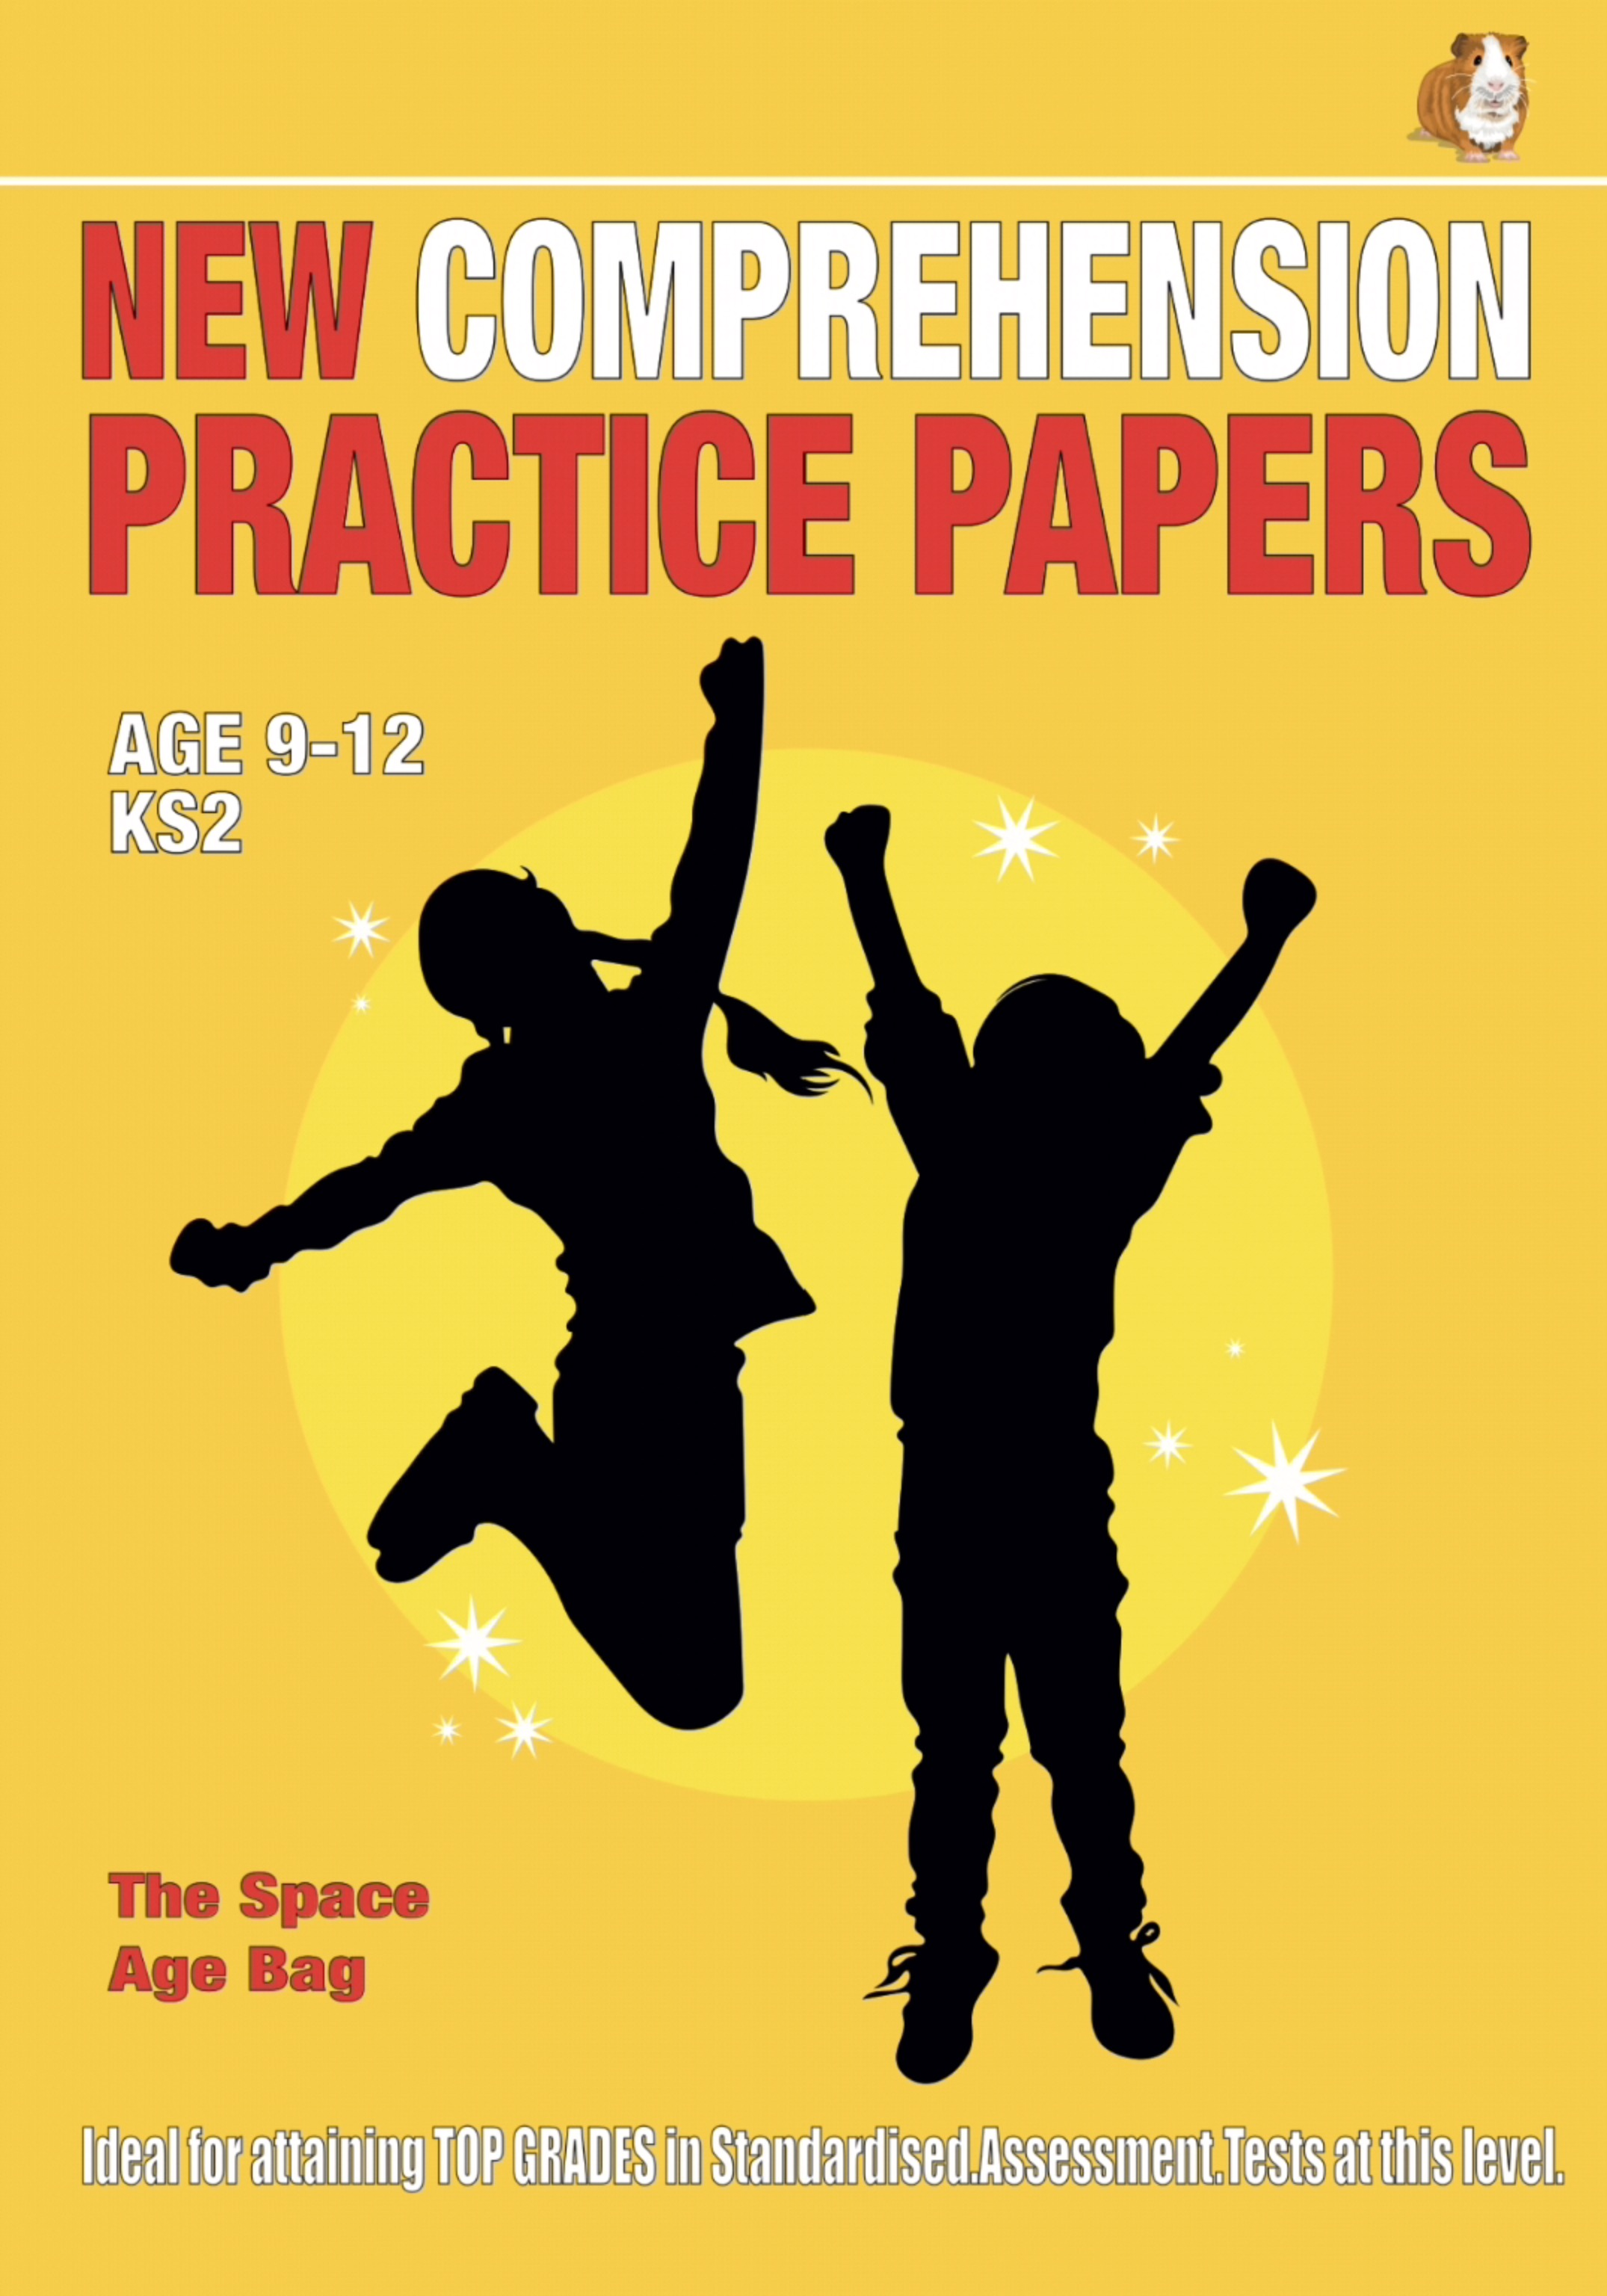 Comprehension Practice Papers COMPLETE SET (9-12 years)